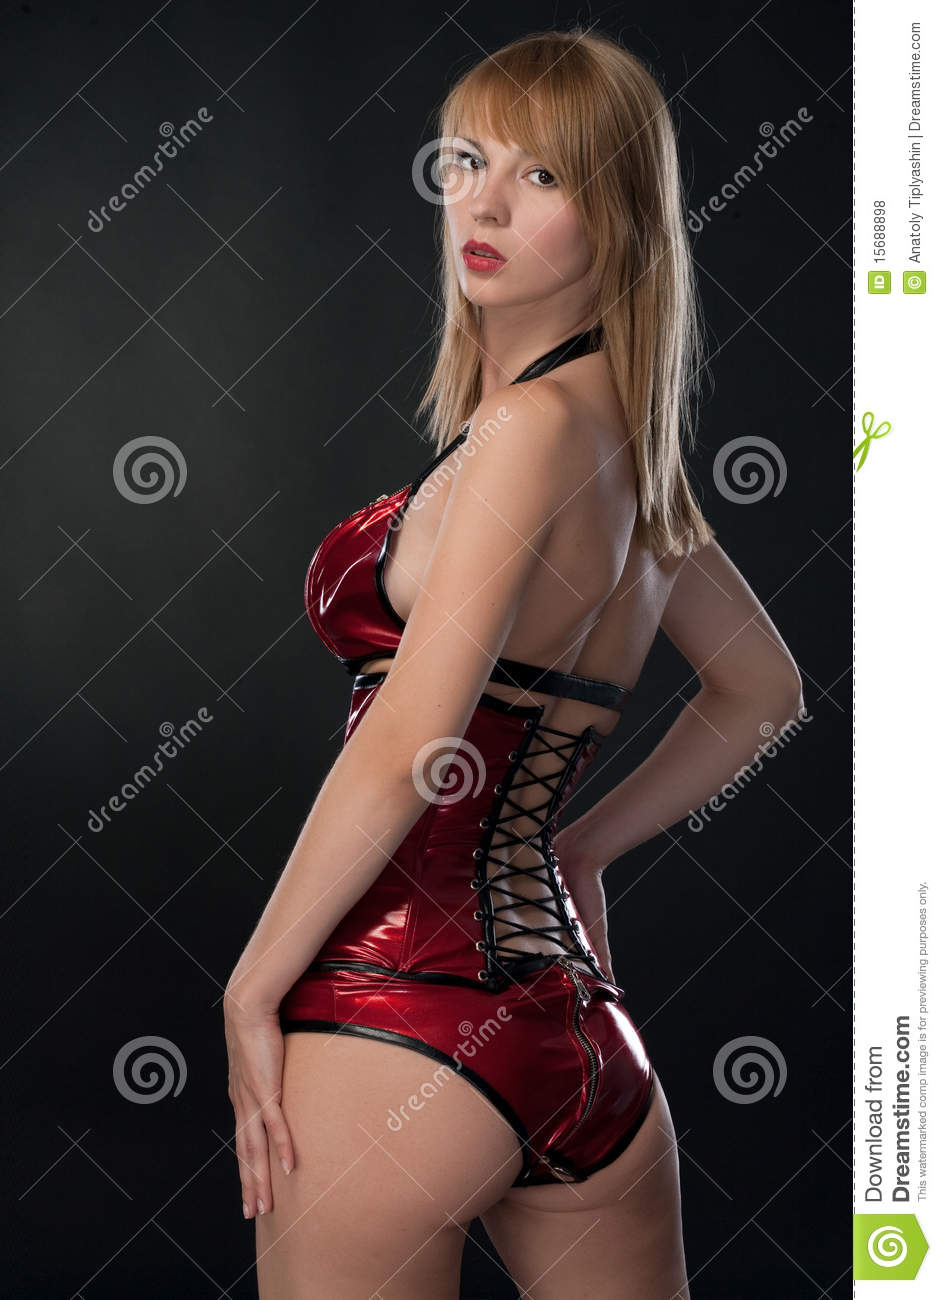 Beauty woman in clothing